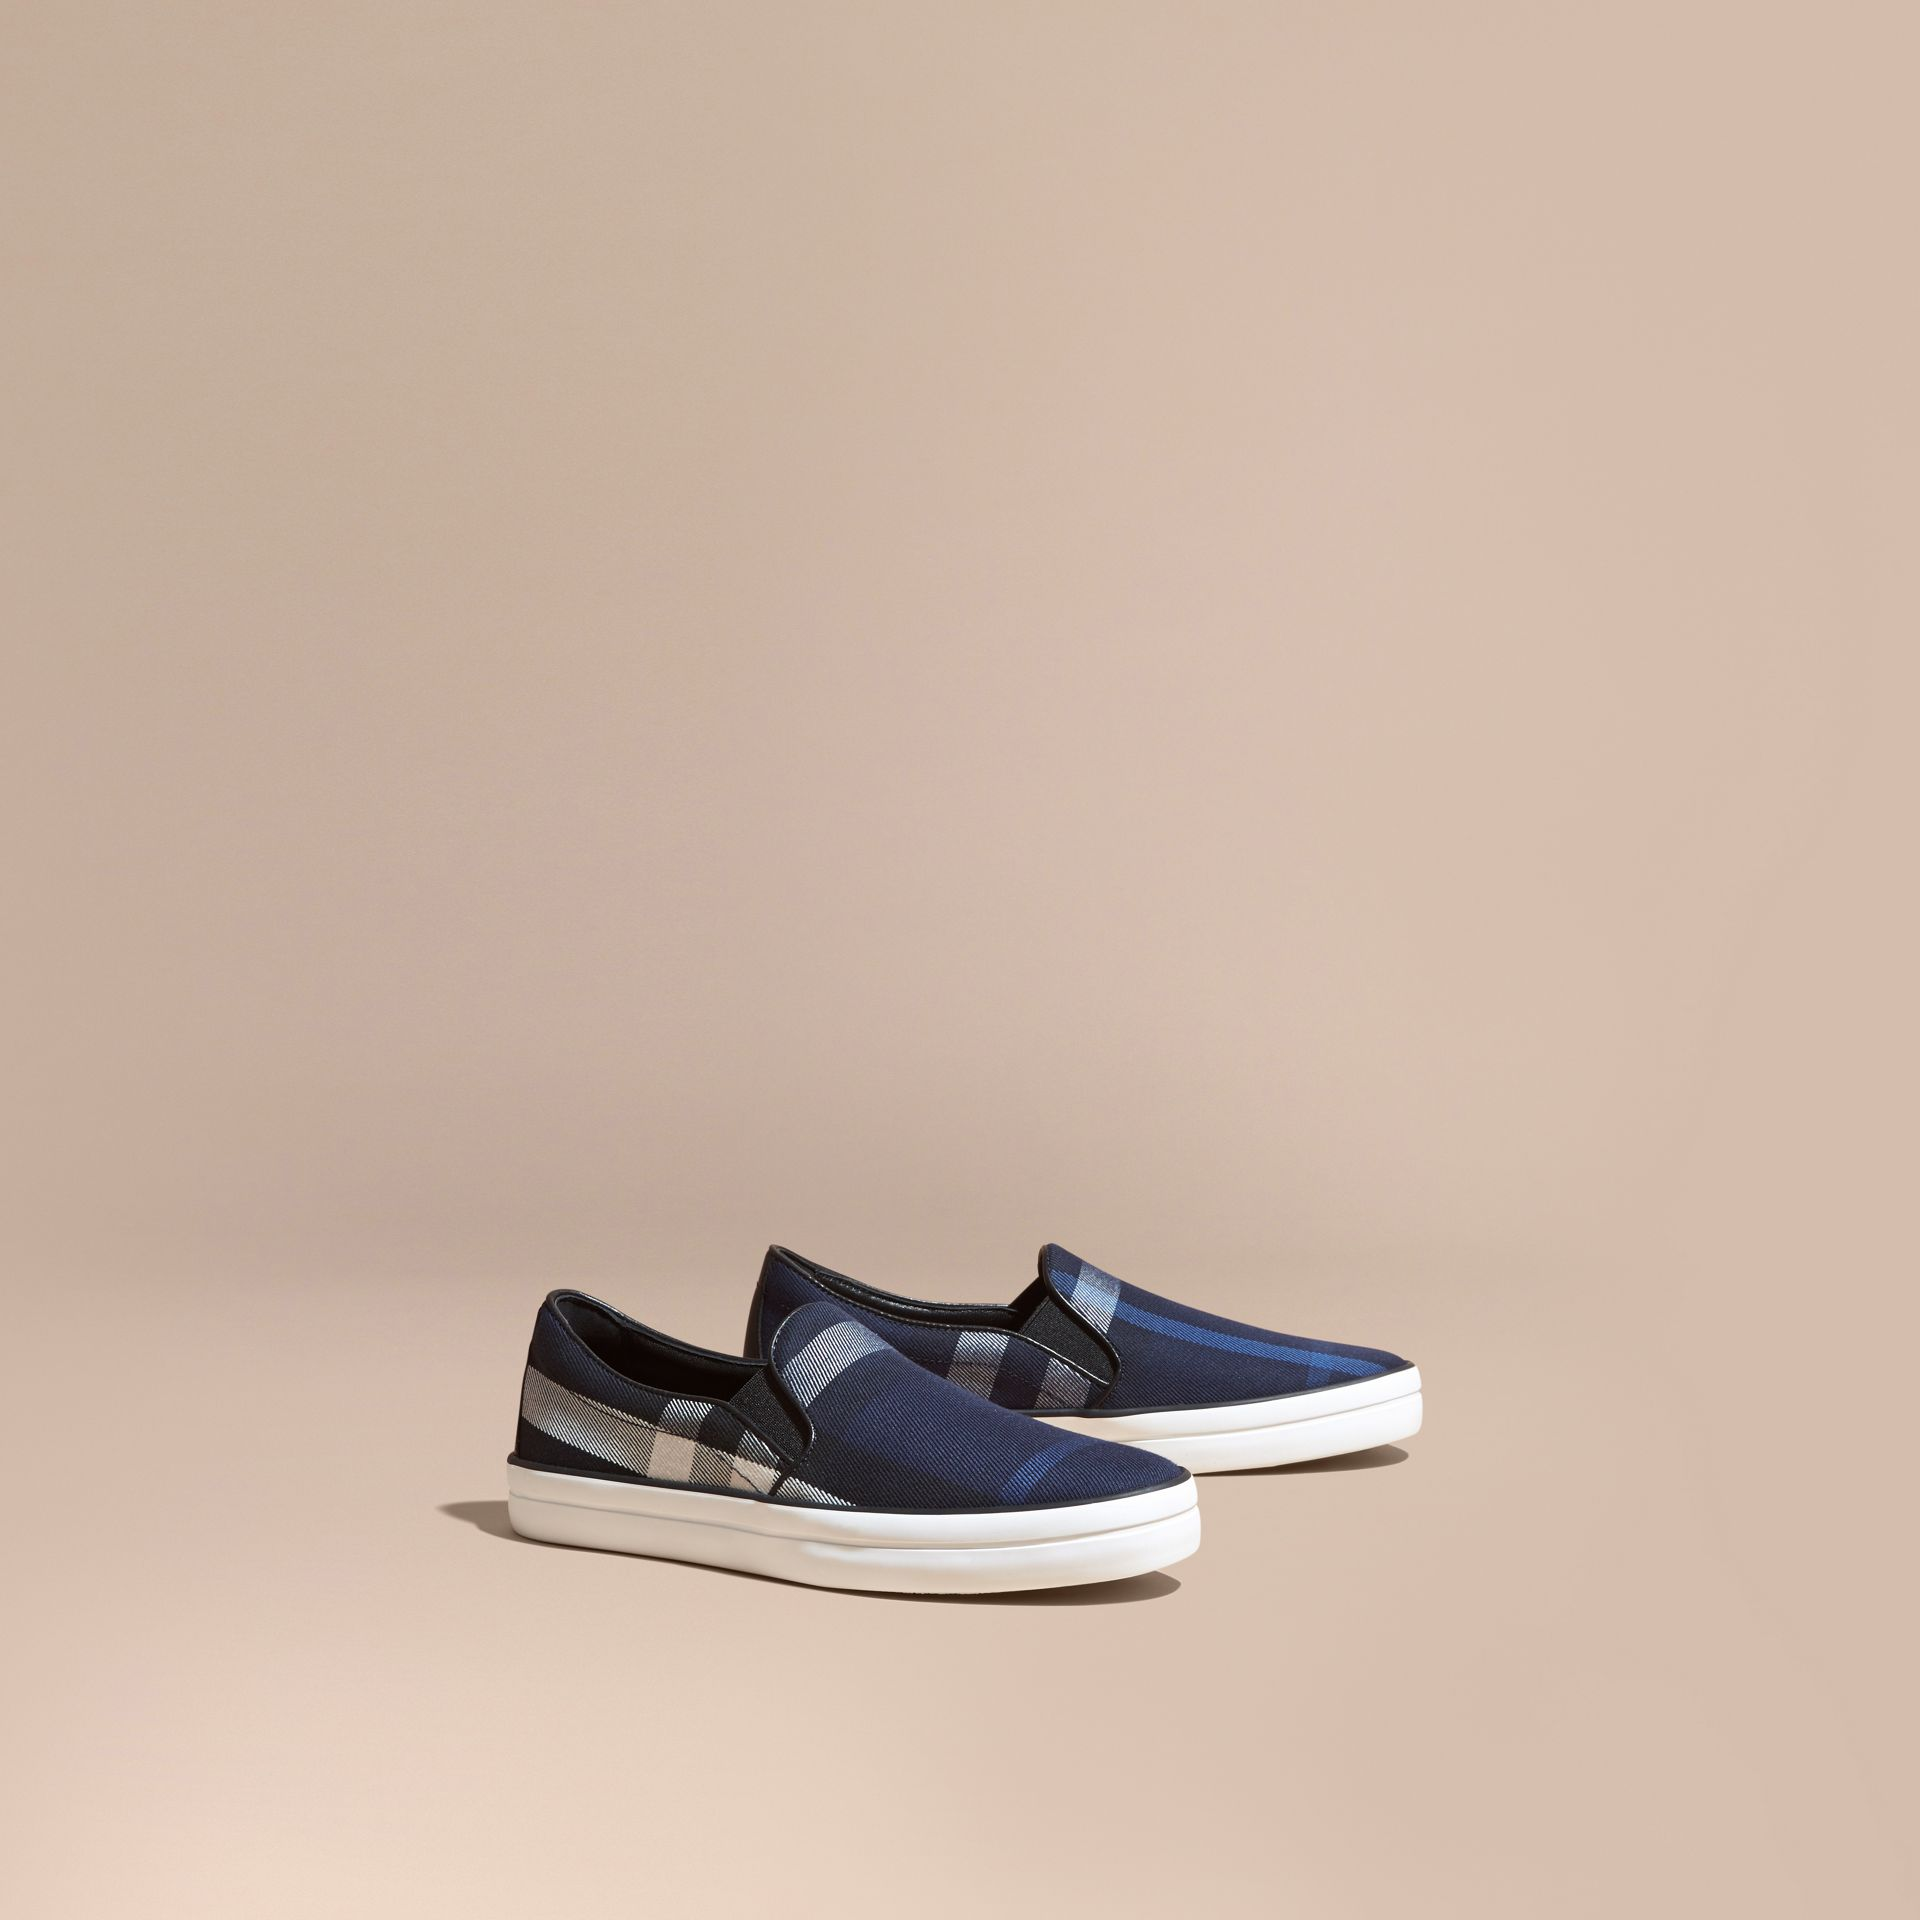 Overdyed House Check Cotton Slip-on Trainers in Indigo Blue - Women | Burberry - gallery image 1